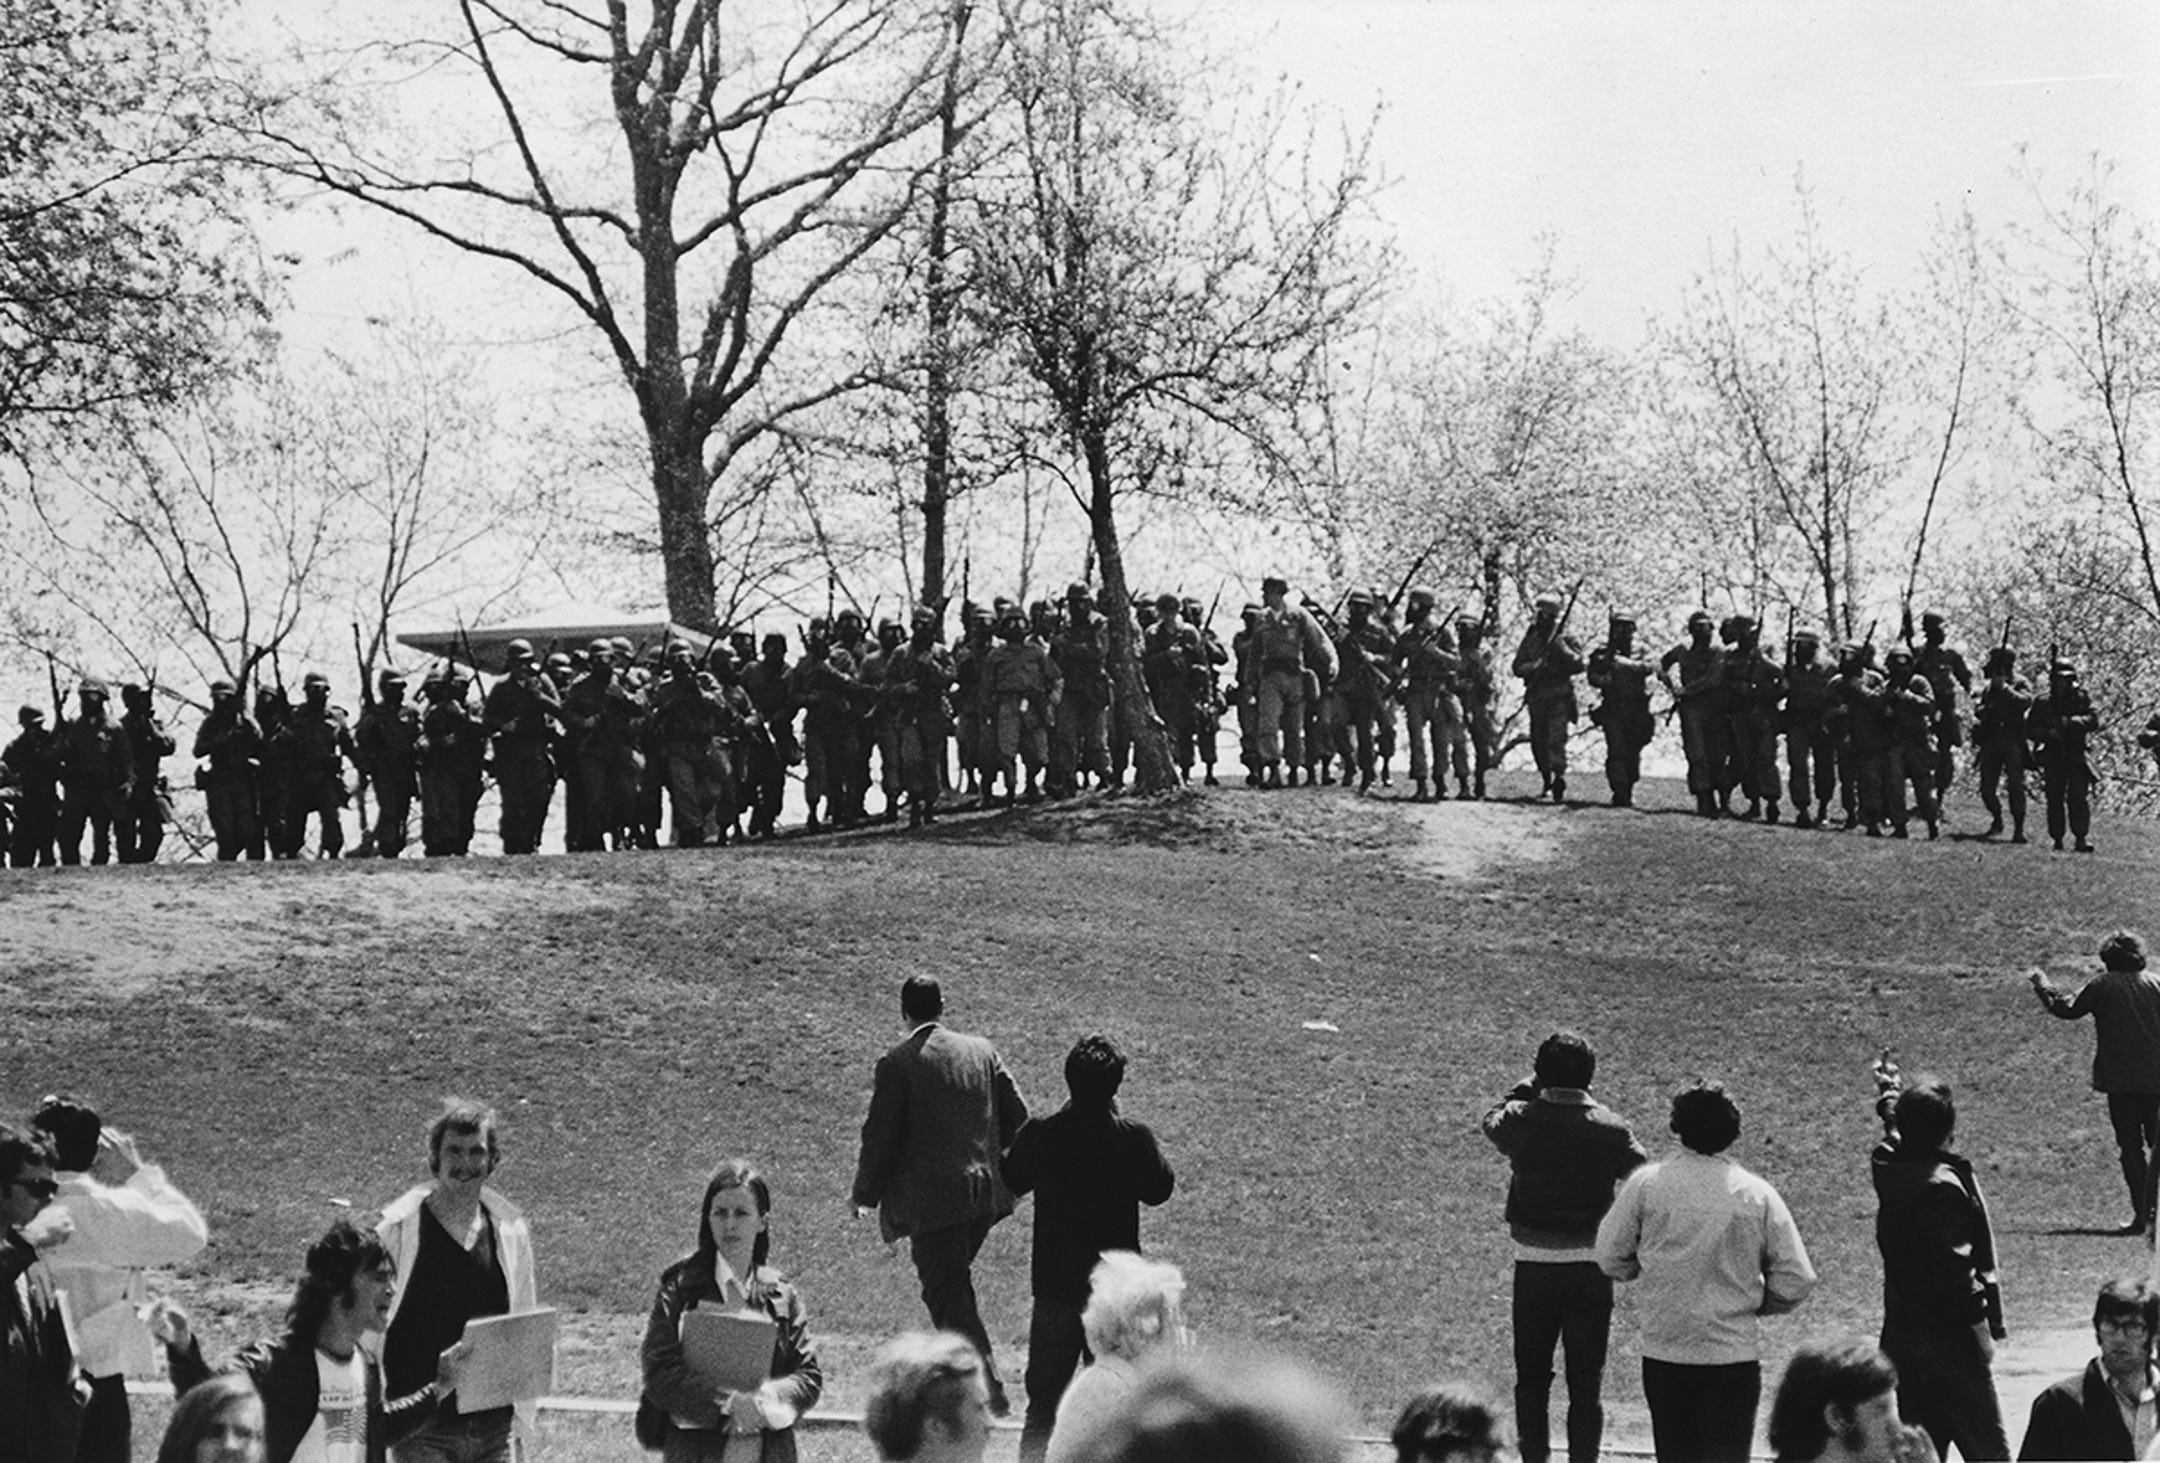 Kent State shootings: Victim despised violence. He died in a hail